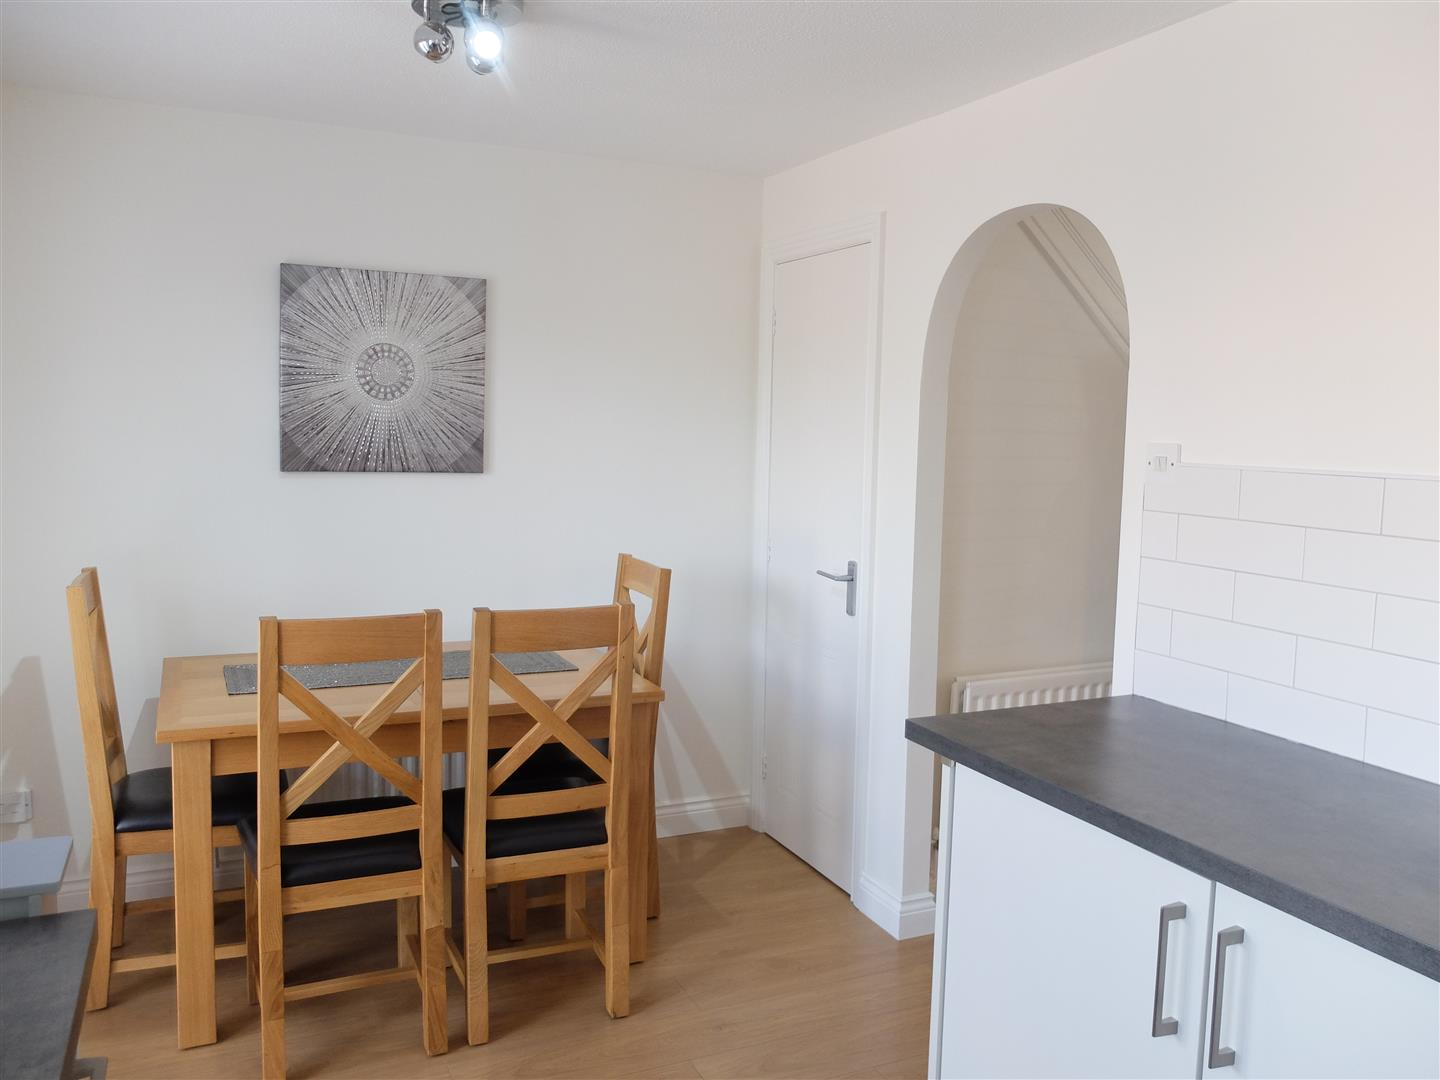 3 Bedrooms House - Semi-Detached On Sale 18 Whimbrel Drive Carlisle